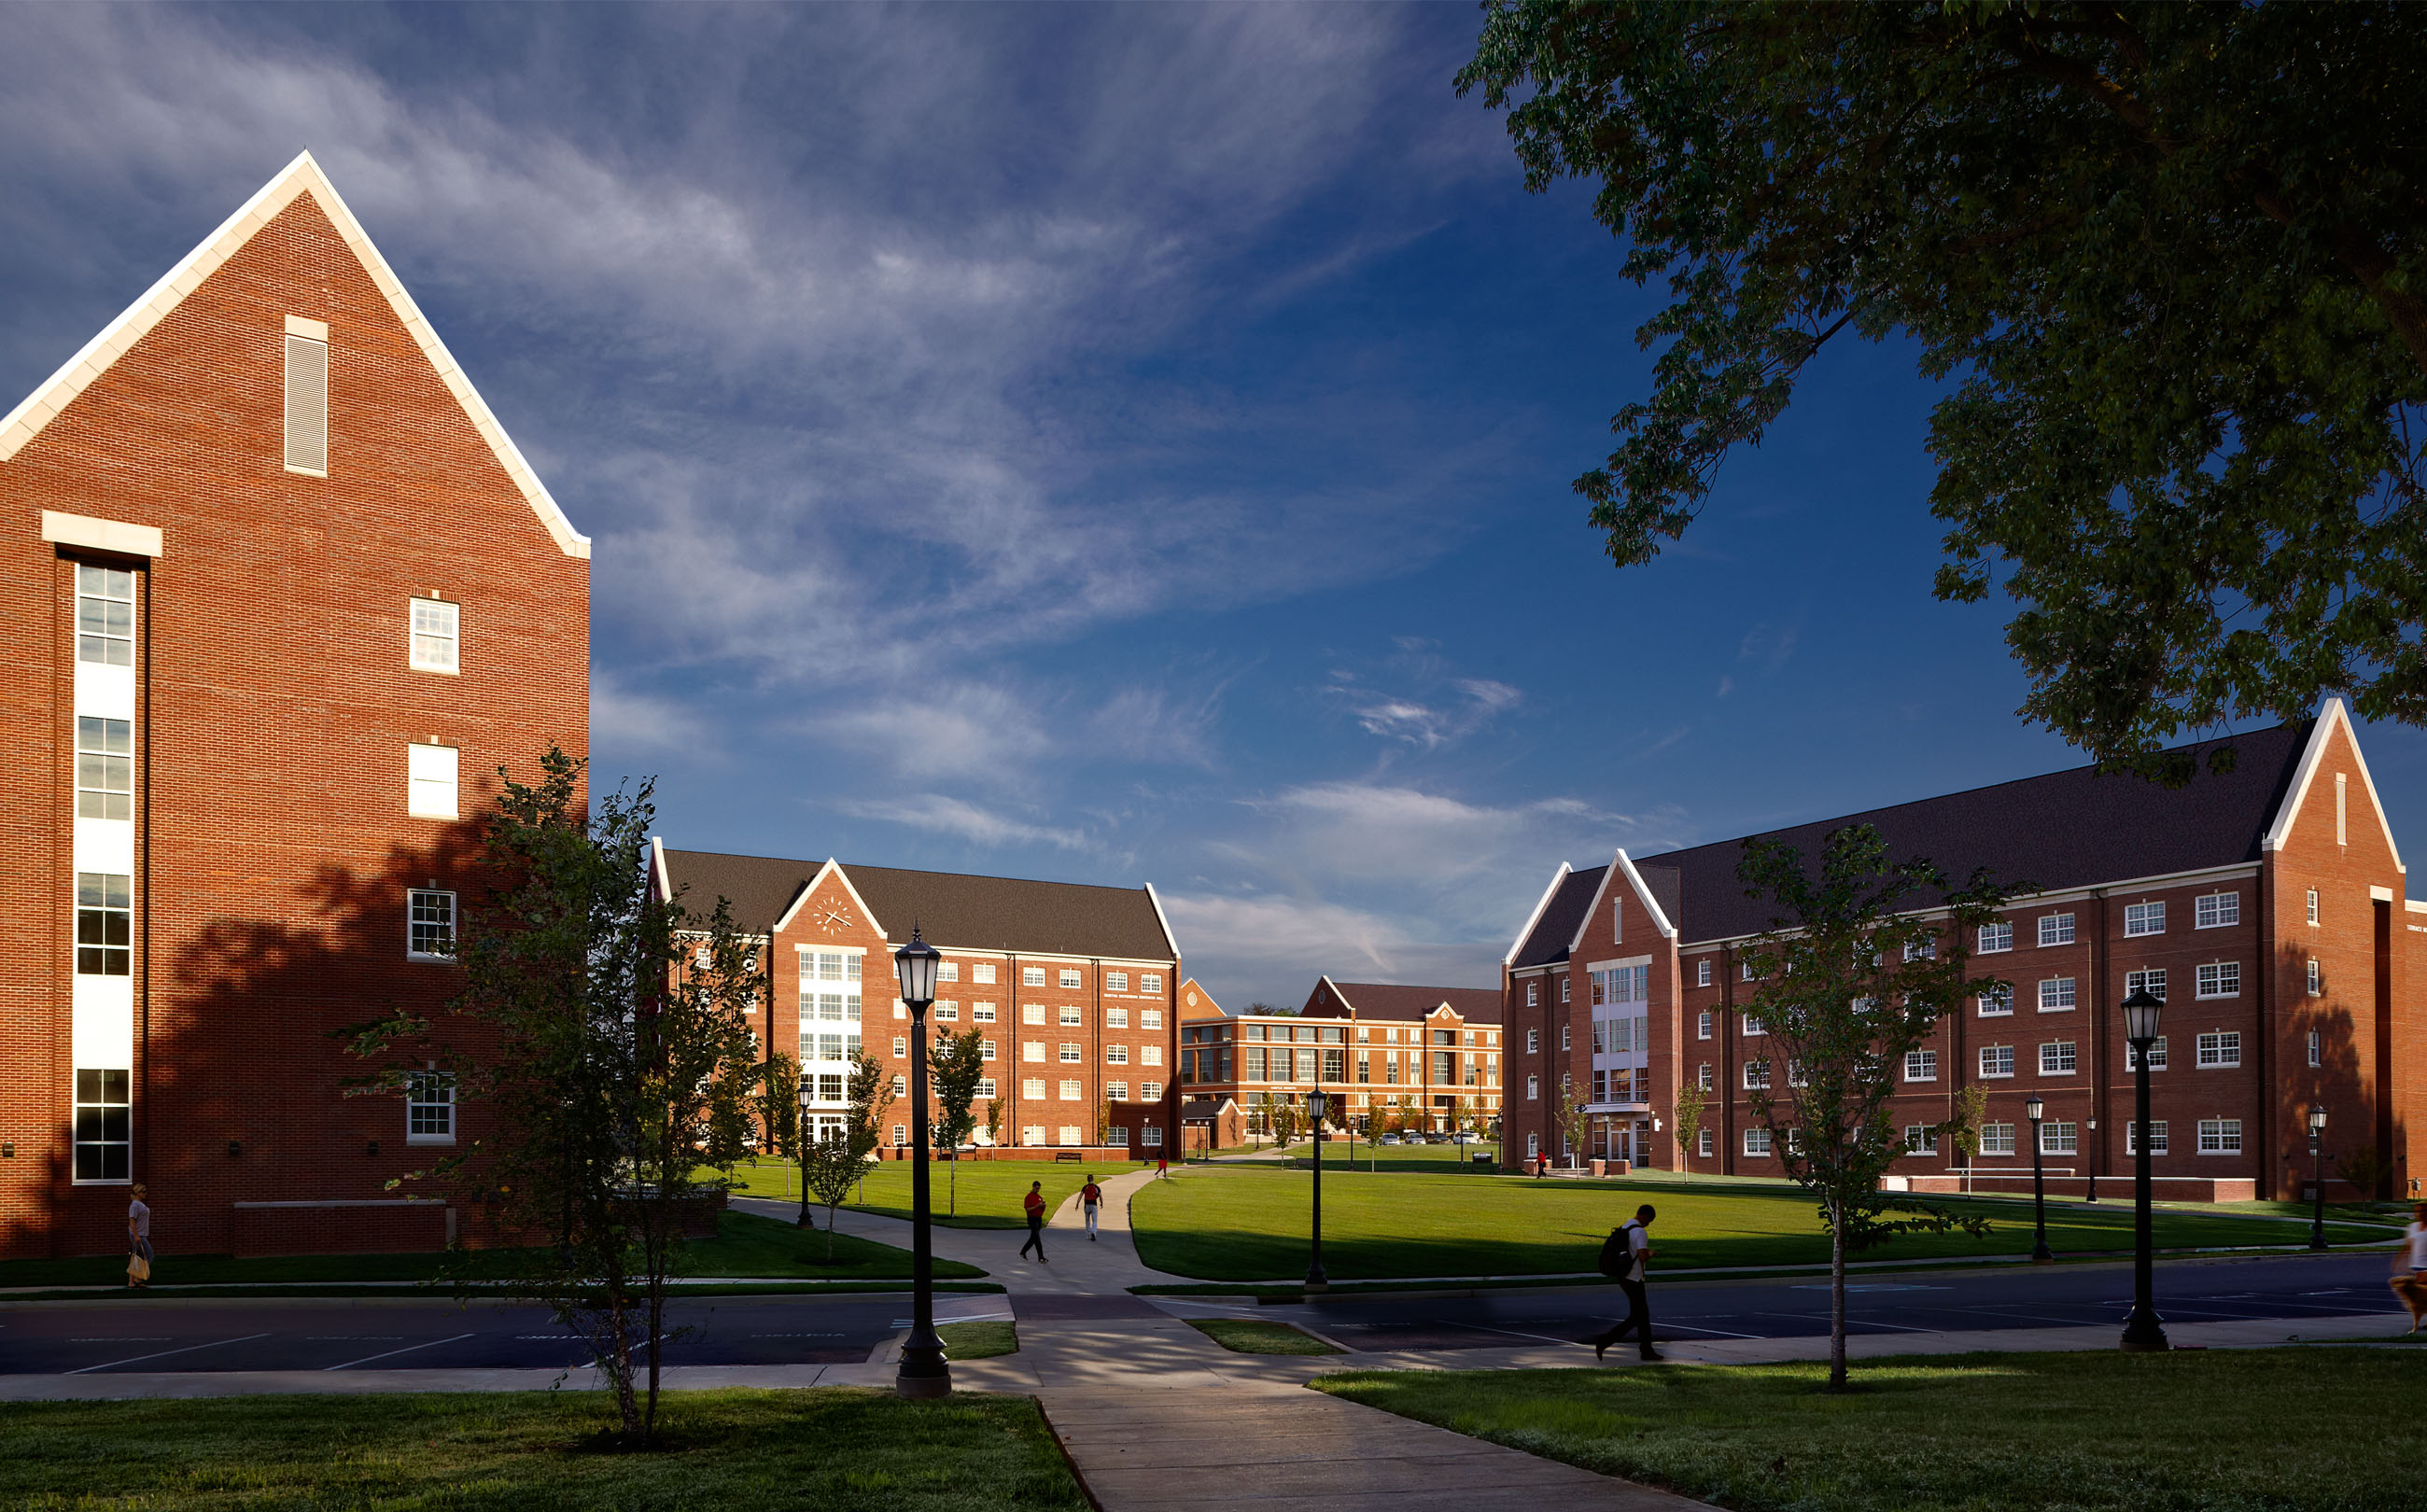 Student Housing, Austin Peay State University, APSU, Clarksville, TN, Tennessee, architecture, design, higher education, new construction, exterior photos